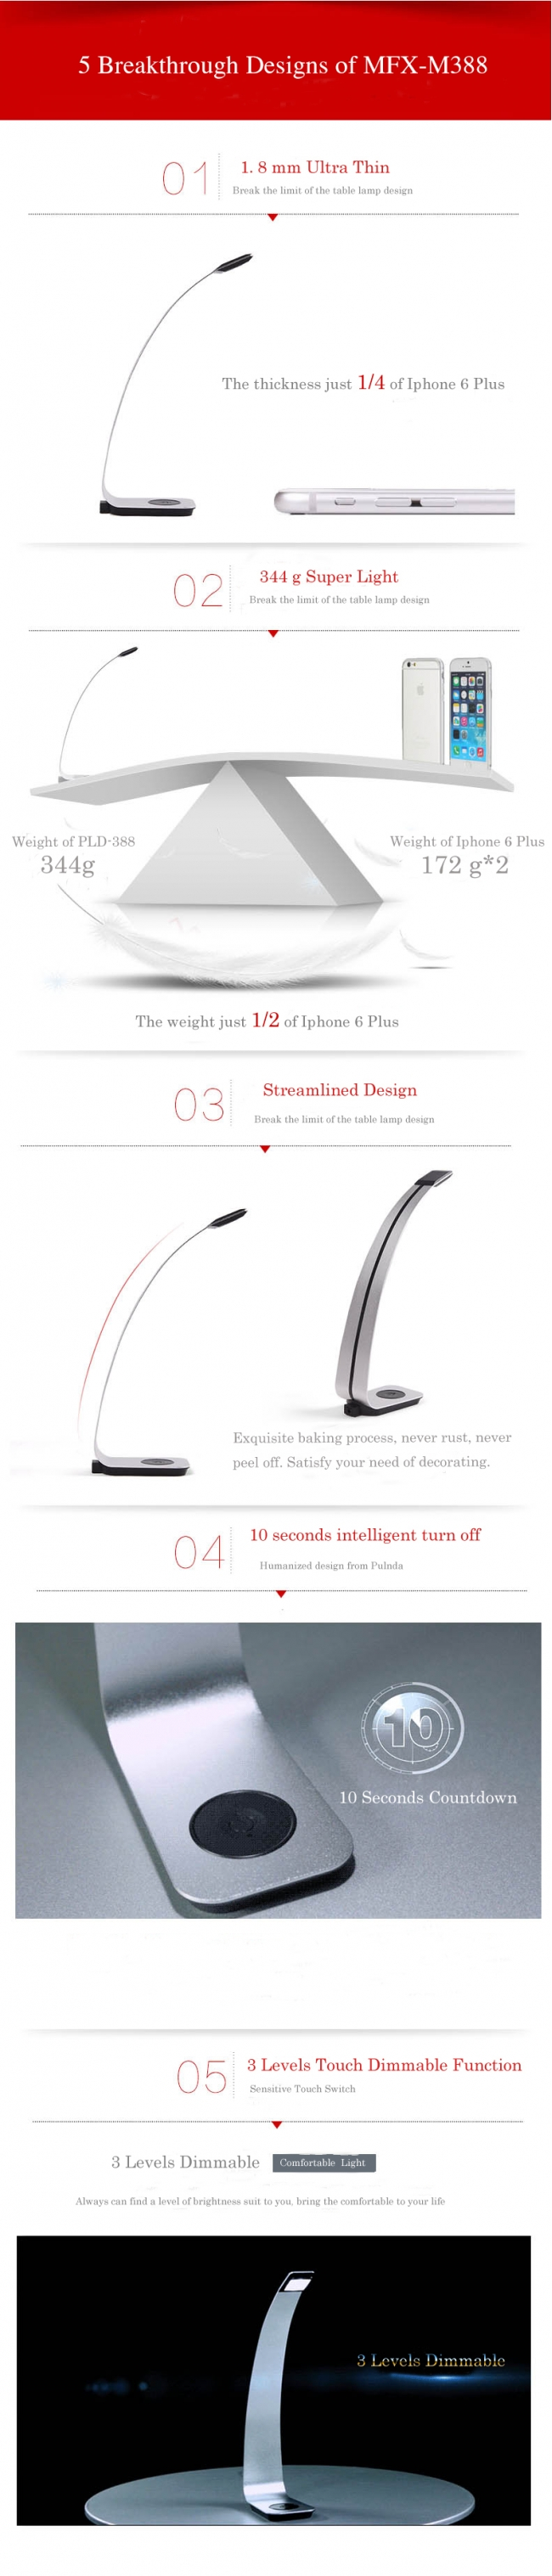 5 Advantages of MFX-M388 LED Table Lamp!